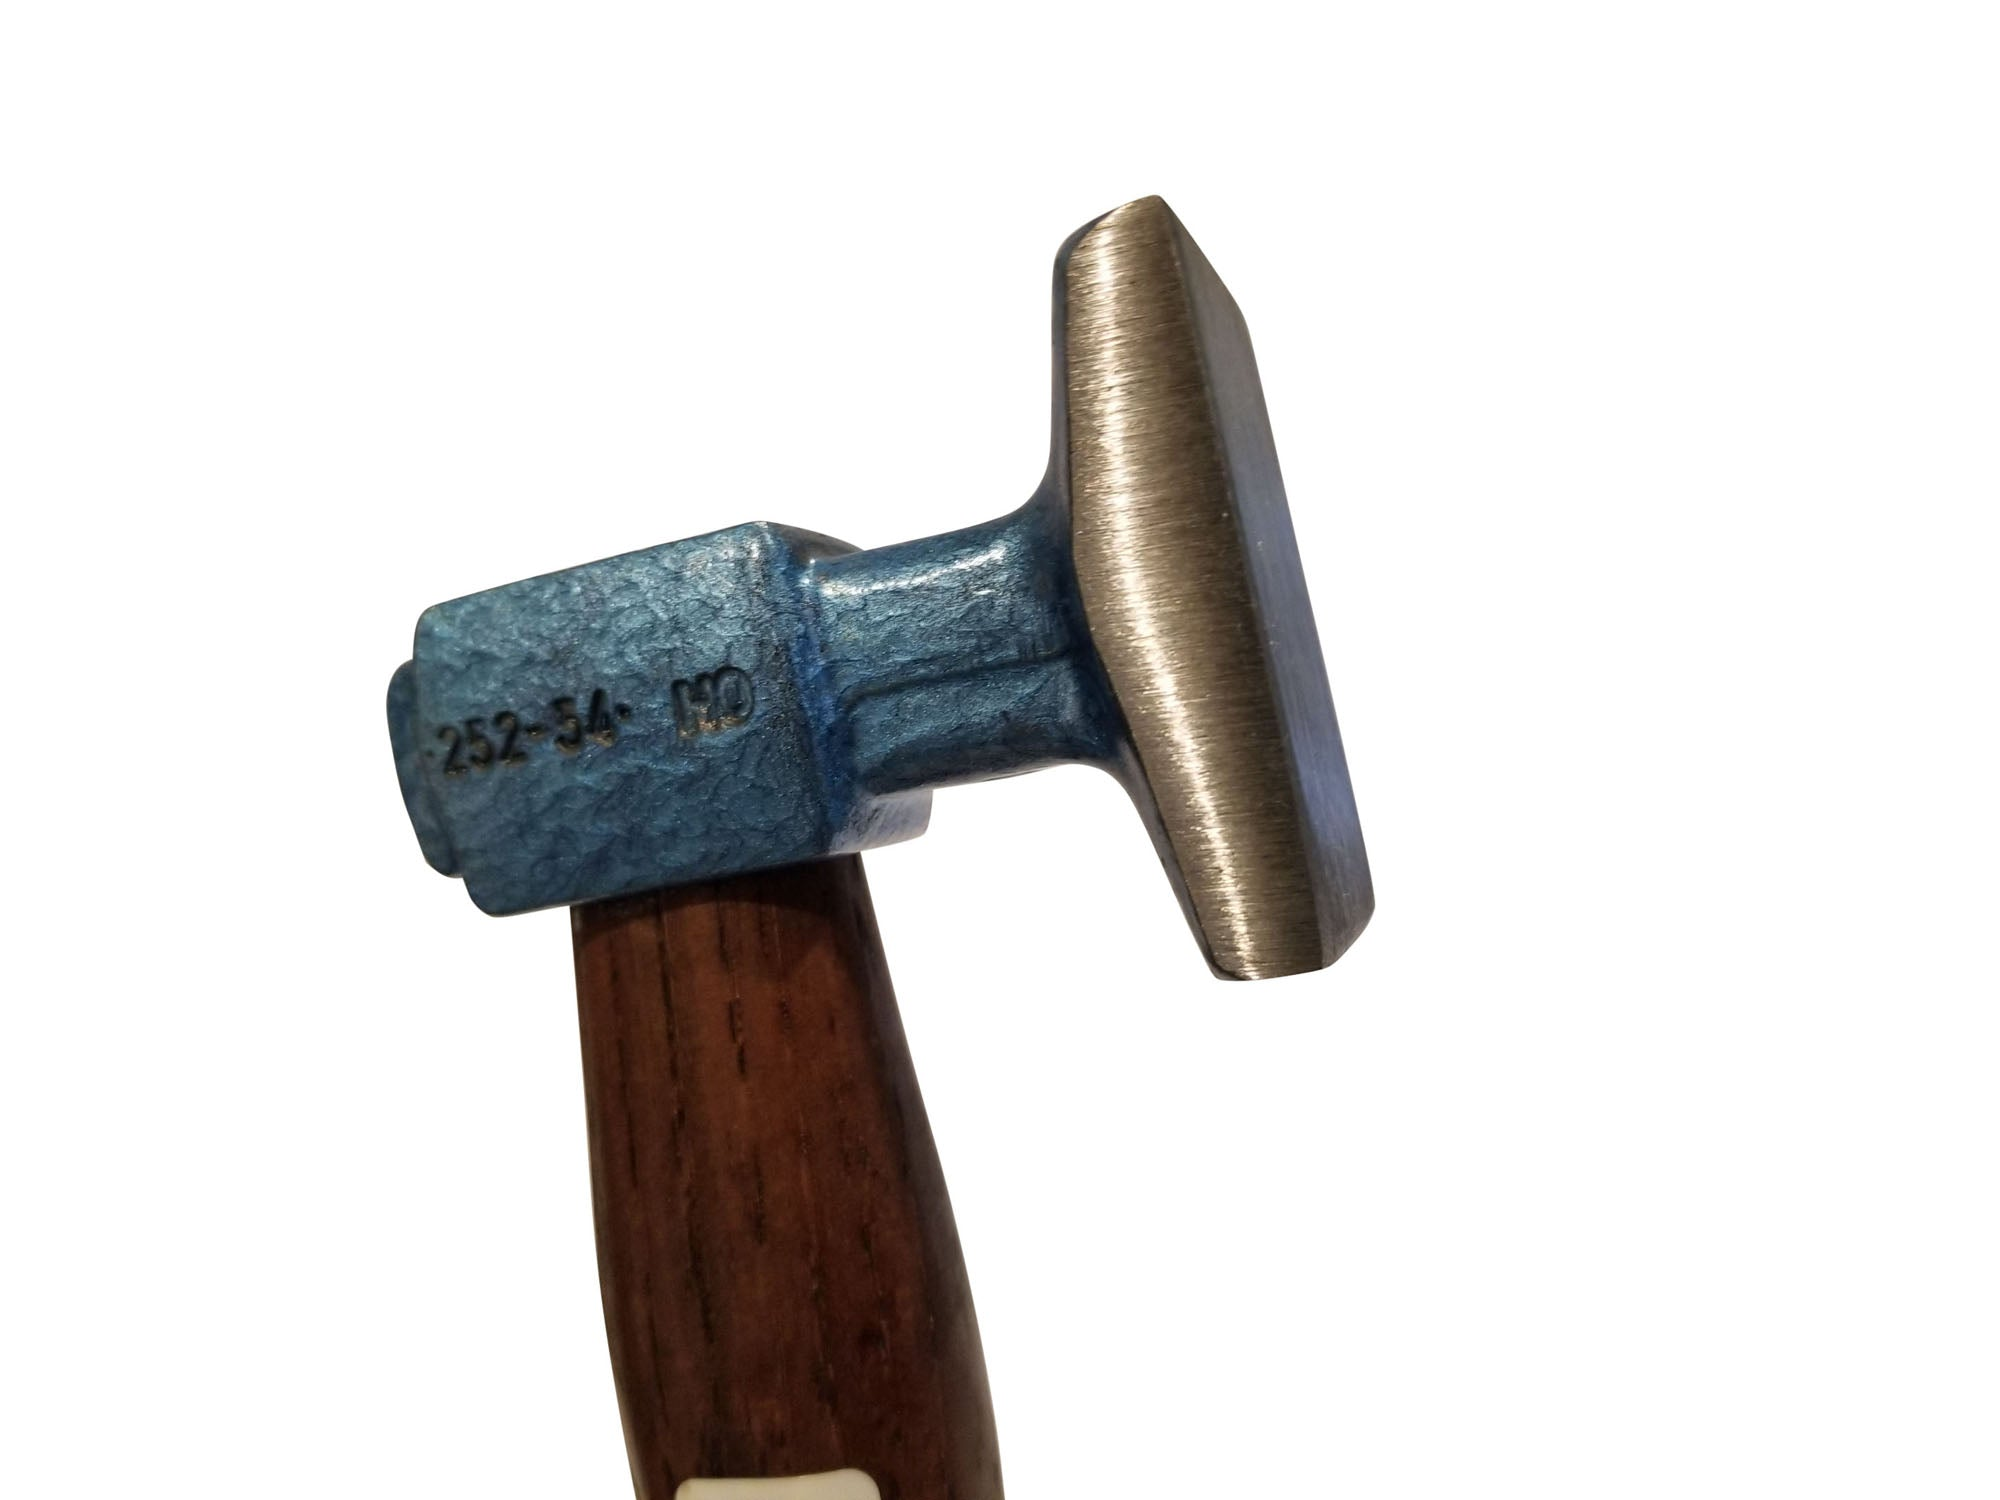 Planishing Flat Smooth Single Face 2525402 Bumping Hammer - Blacksmith Source Tool Company